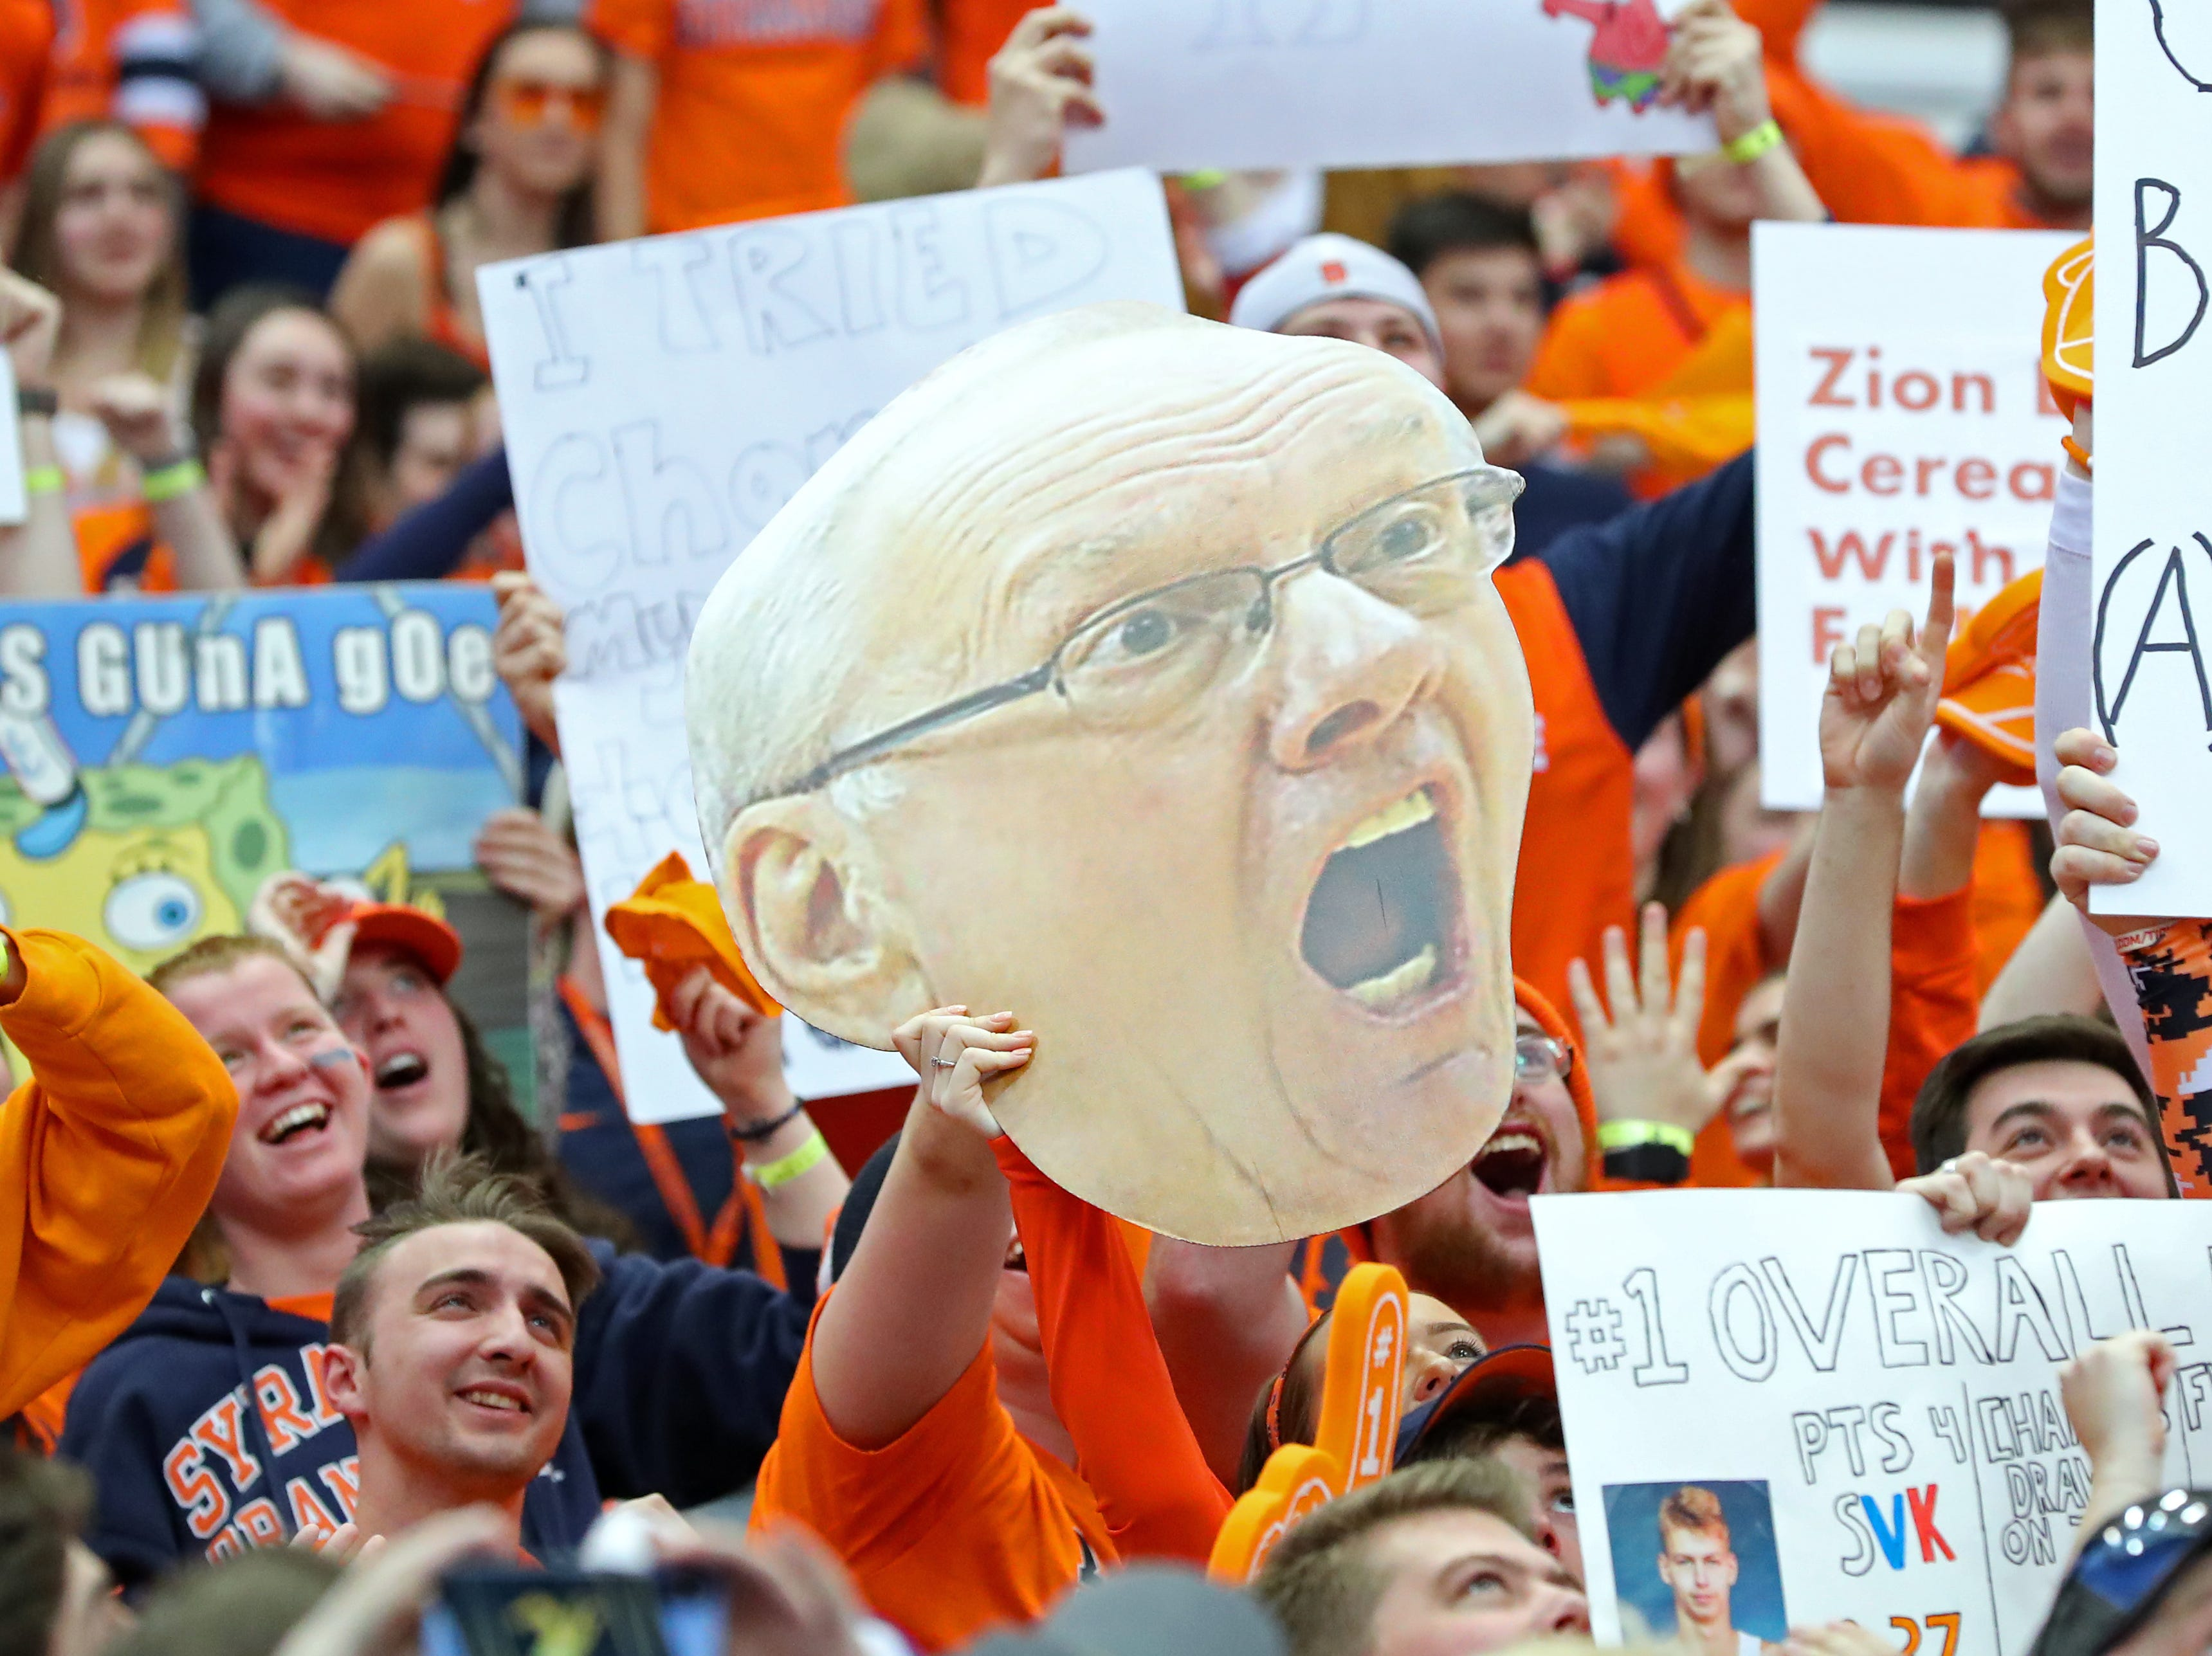 A Syracuse fan holds a cut-out poster of head coach Jim Boeheim before the game against Duke.